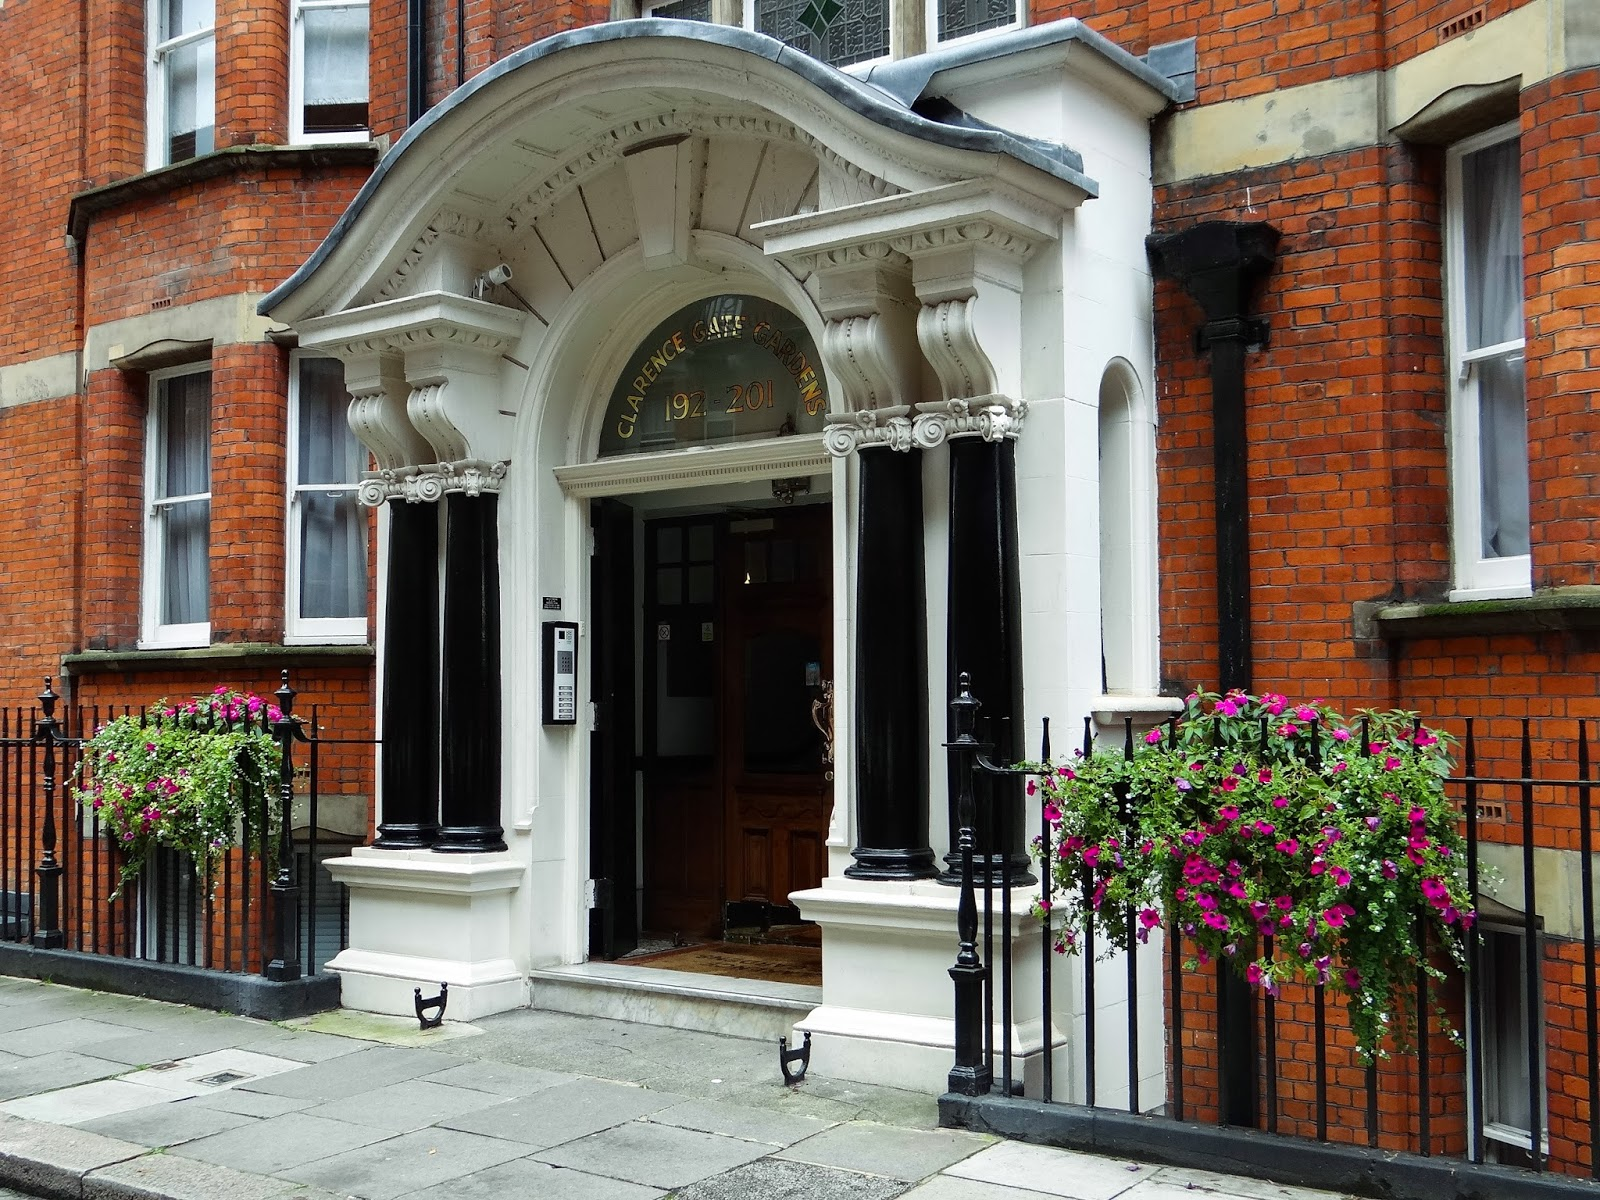 Marylebone quartier chic de londres art daily fix - Quartier chic de londres ...